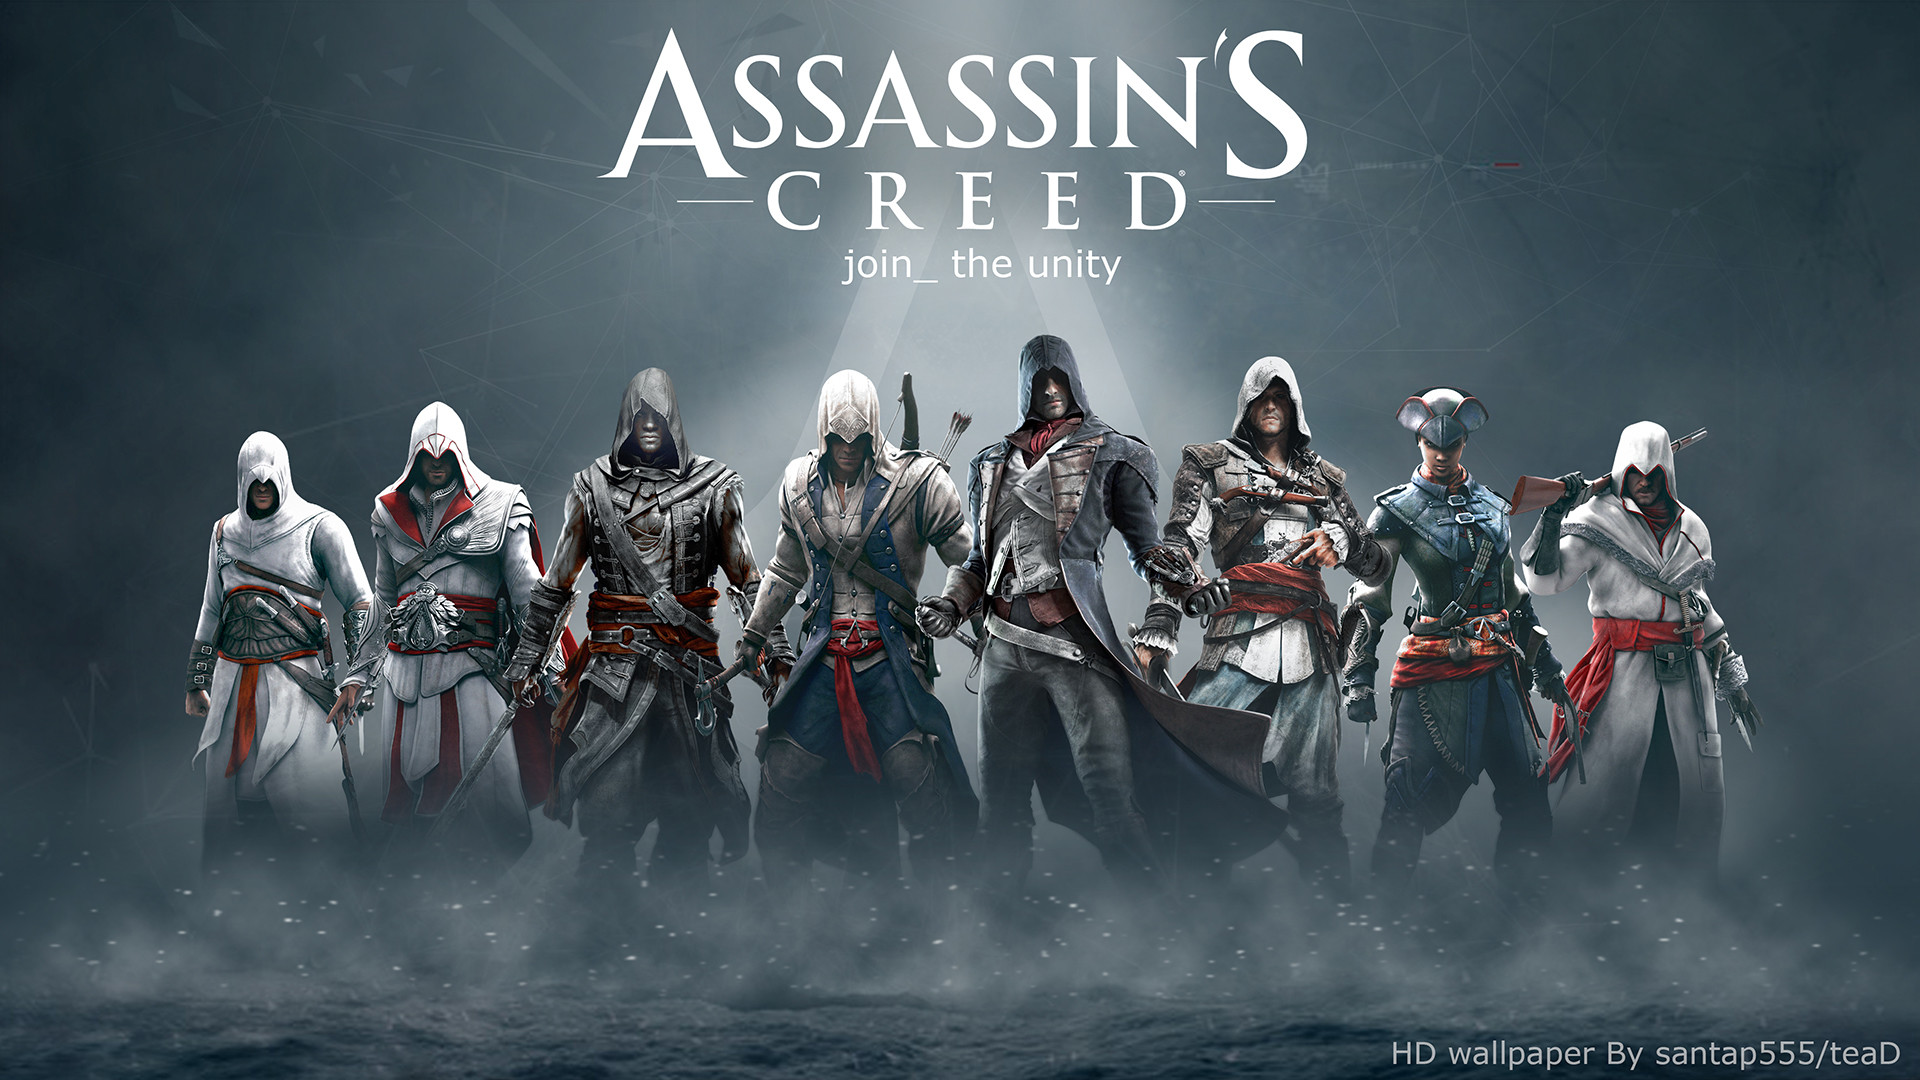 1920x1080 ... Assassin's Creed HD wallpaper by teaD by santap555